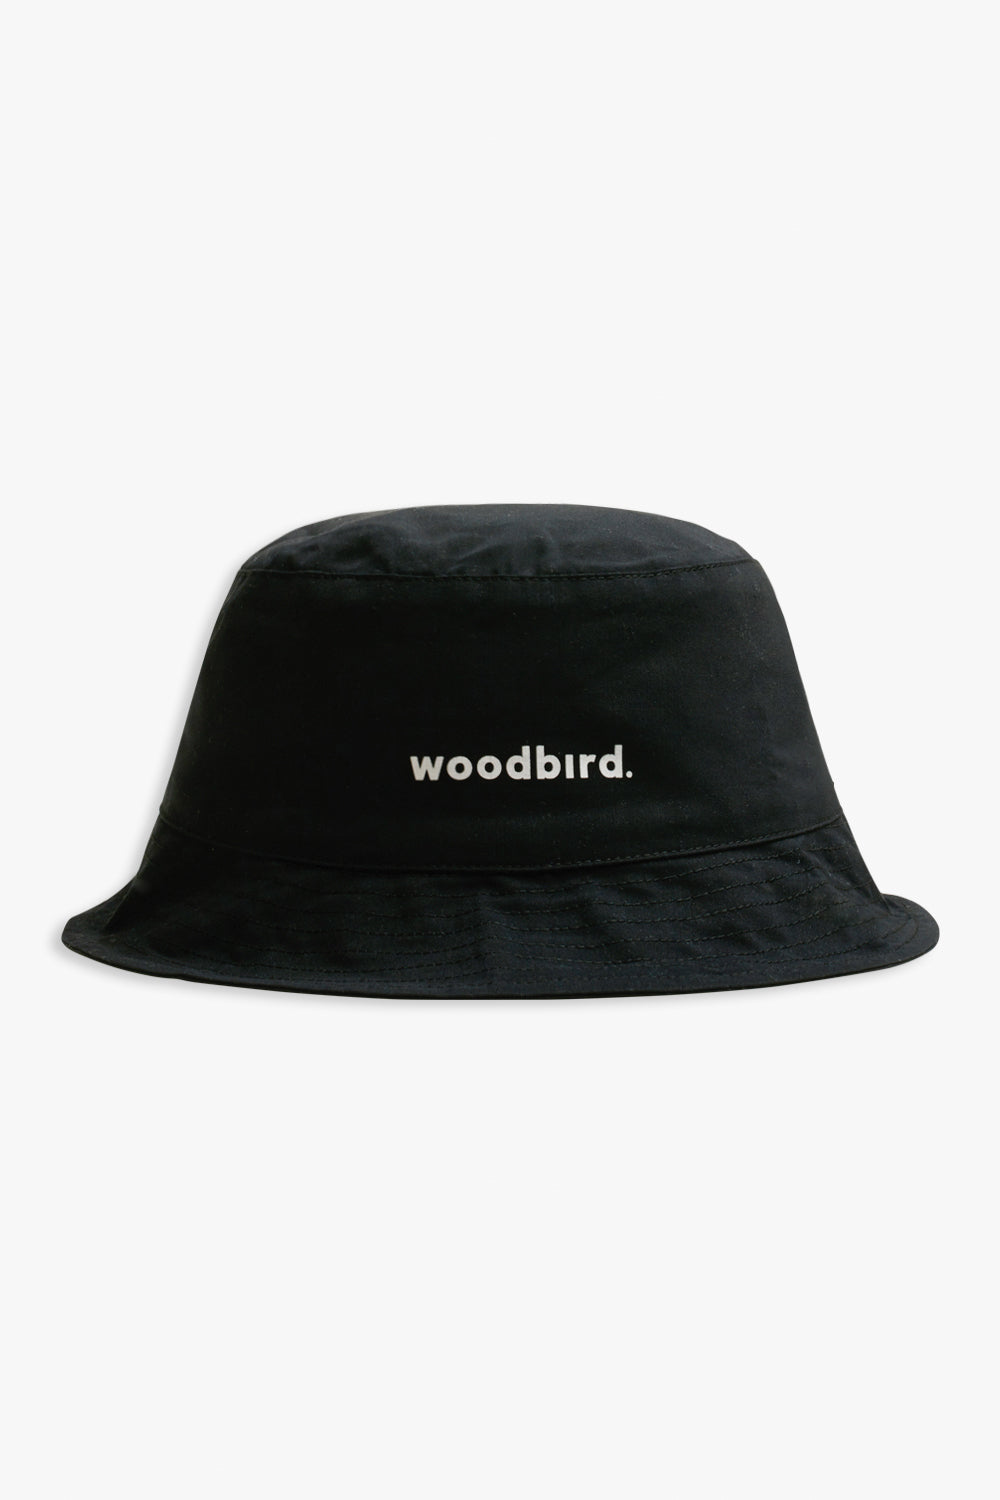 Woodbird Wuang Bucket Hat Accessories Black